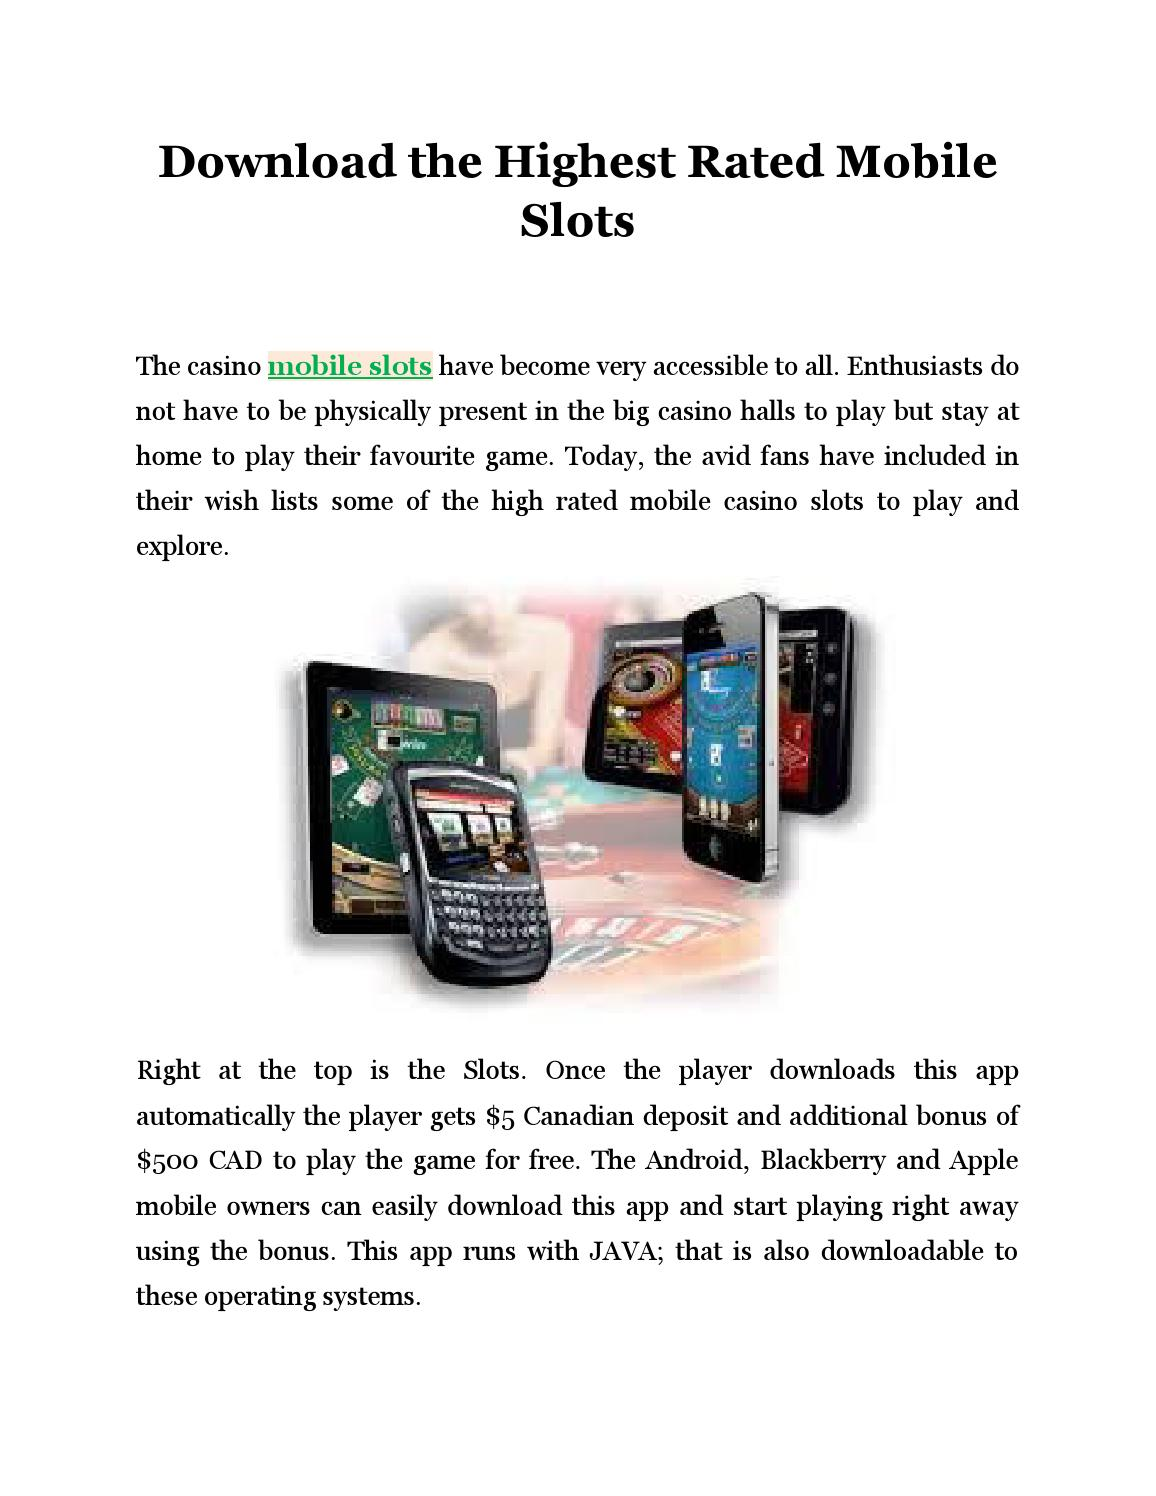 Download The Highest Rated Mobile Slots By Orvillewong Issuu